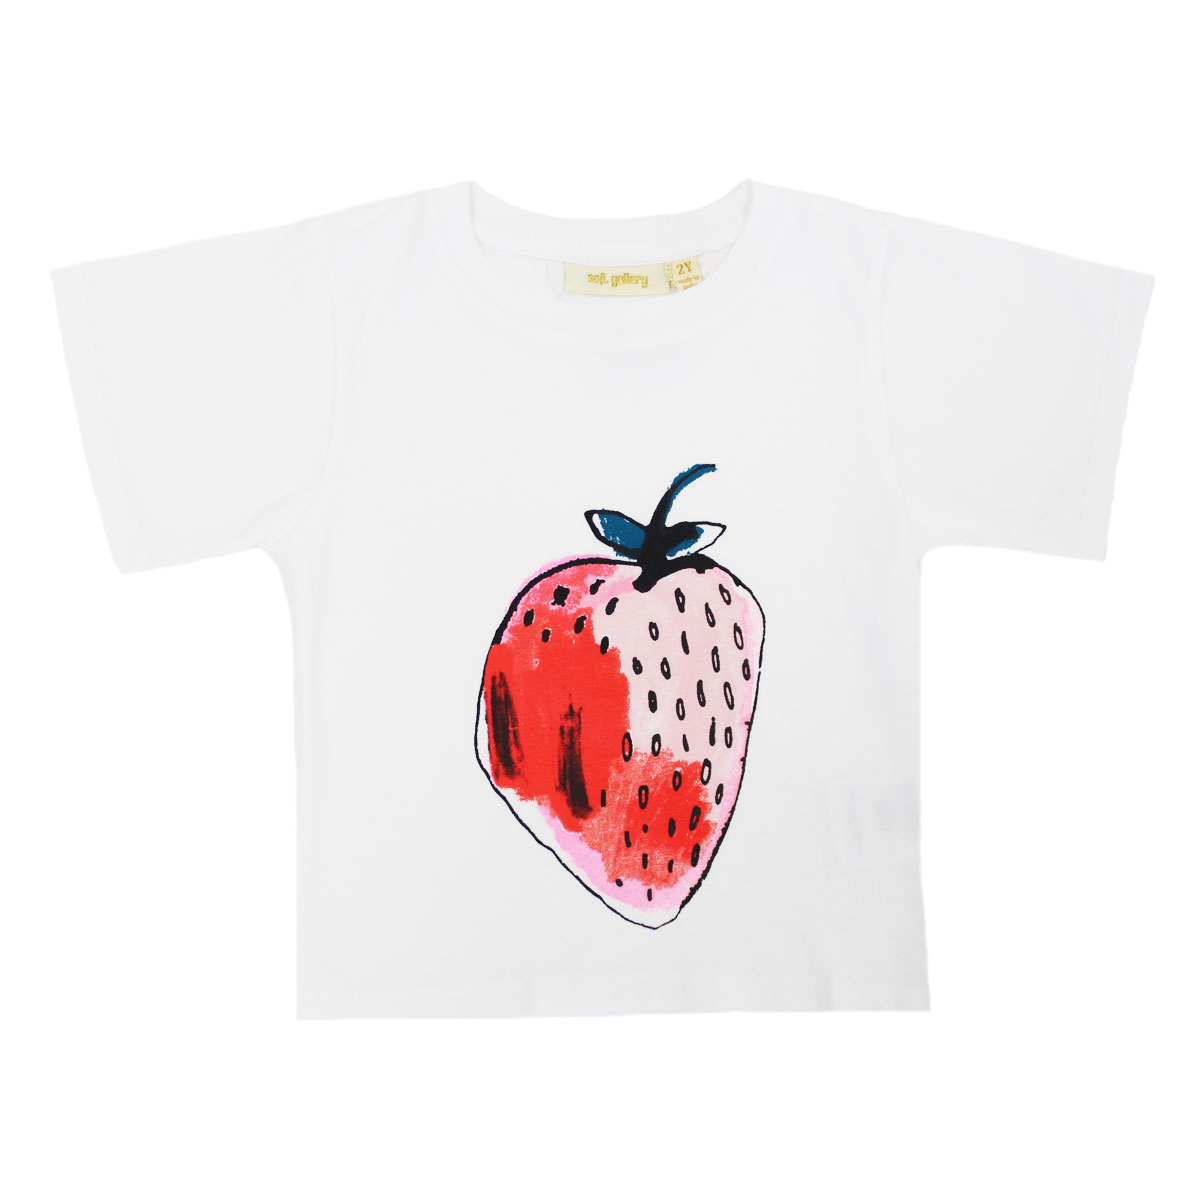 Soft Gallery Dominique T-Shirt in White with Strawberry